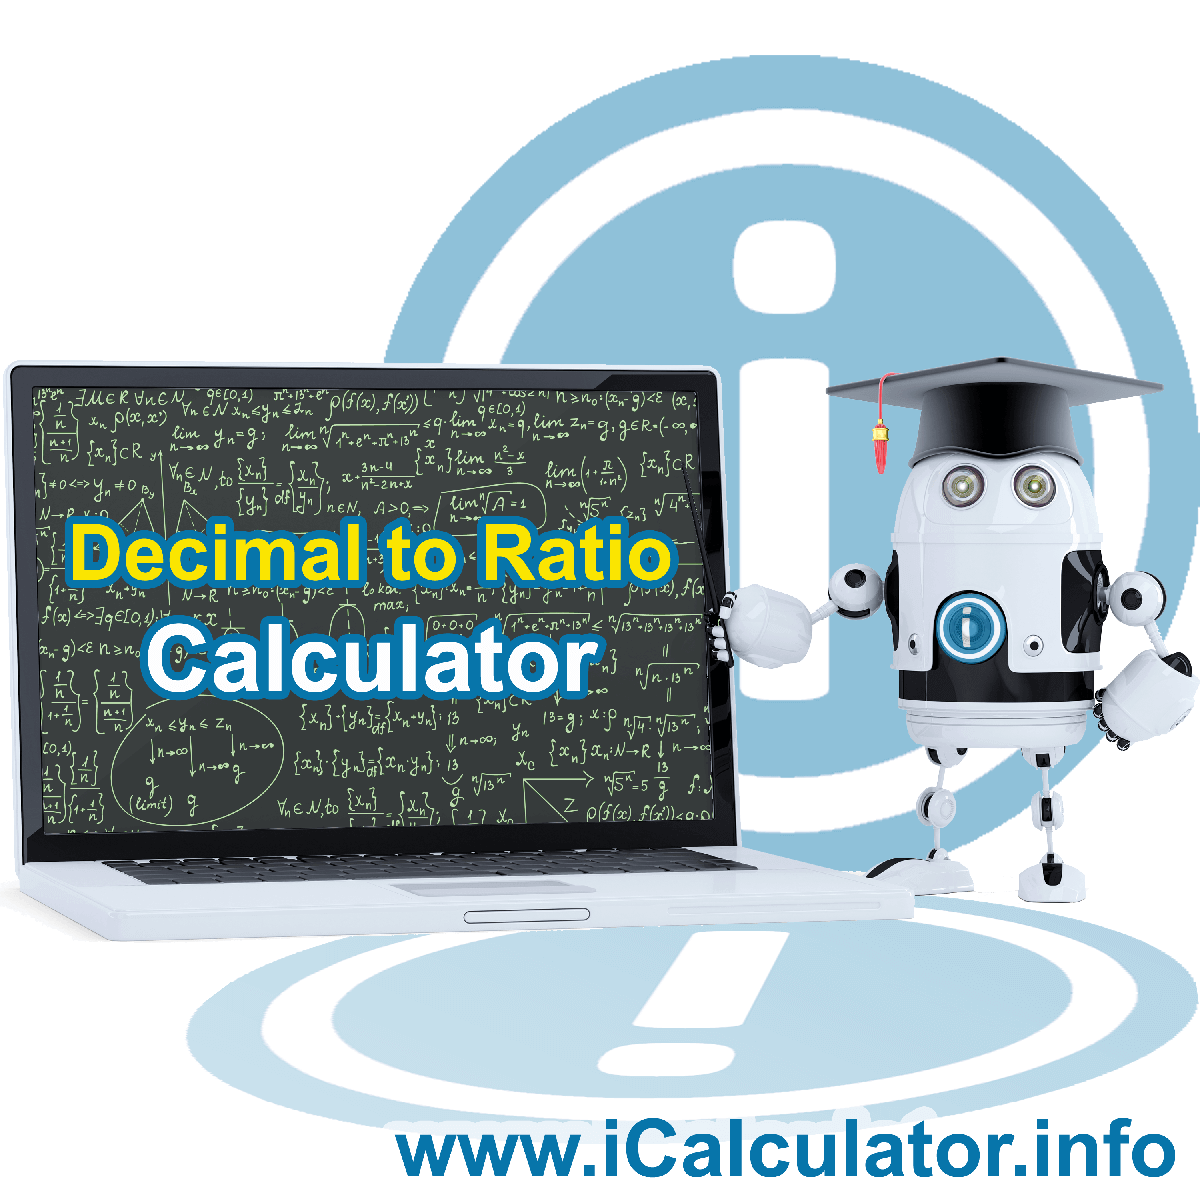 Decimal To Ratio. This image shows the properties and decimal to ratio formula for the Decimal To Ratio